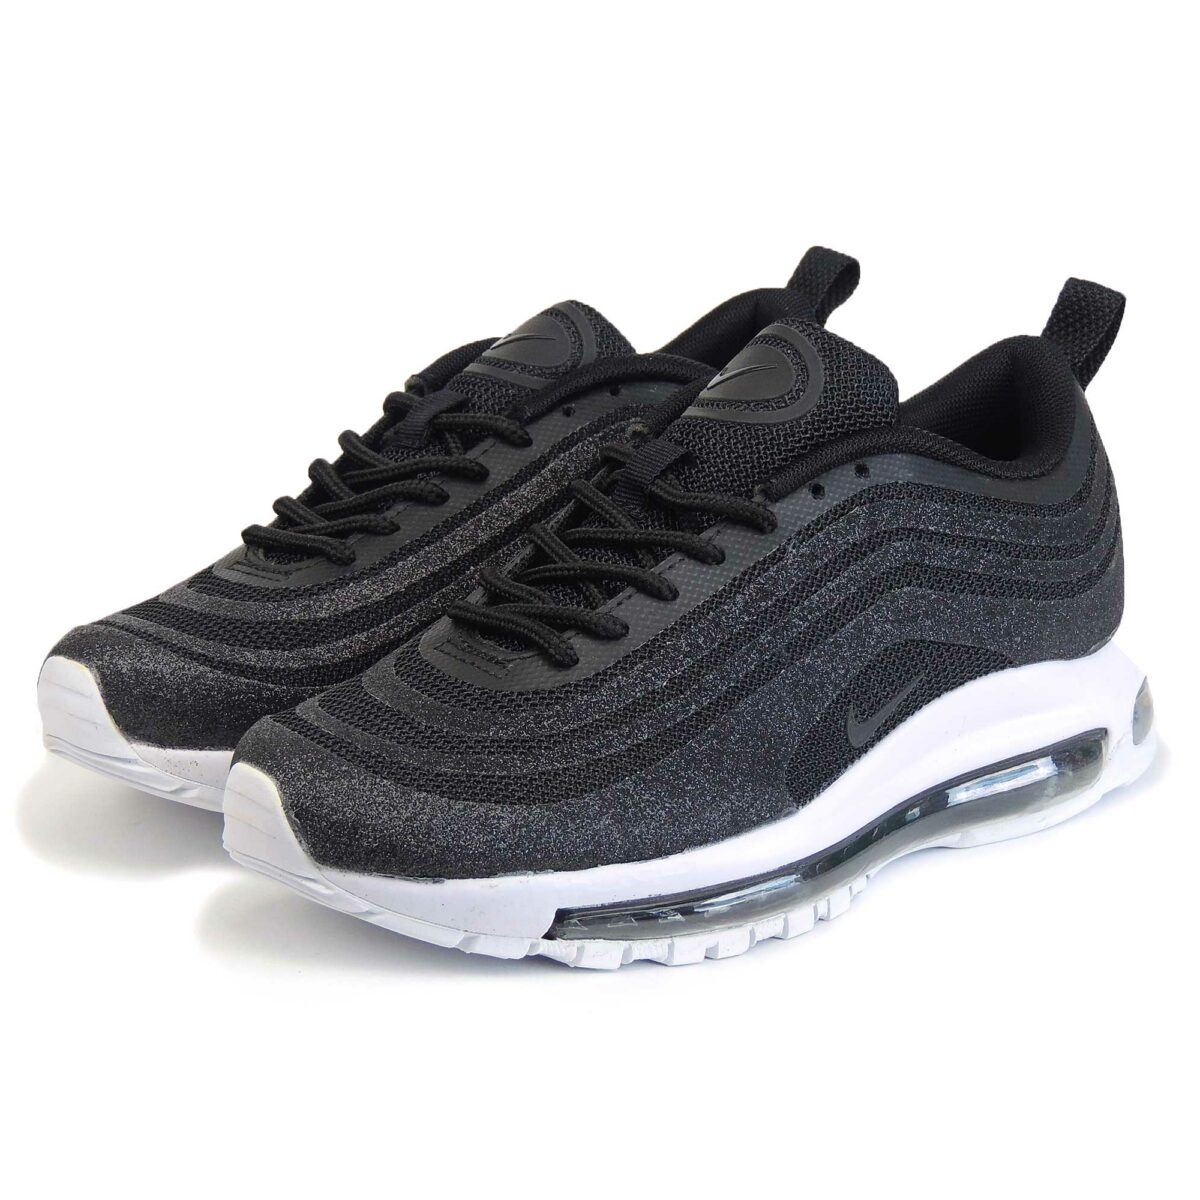 nike air max 97 LX swarovski black white купить